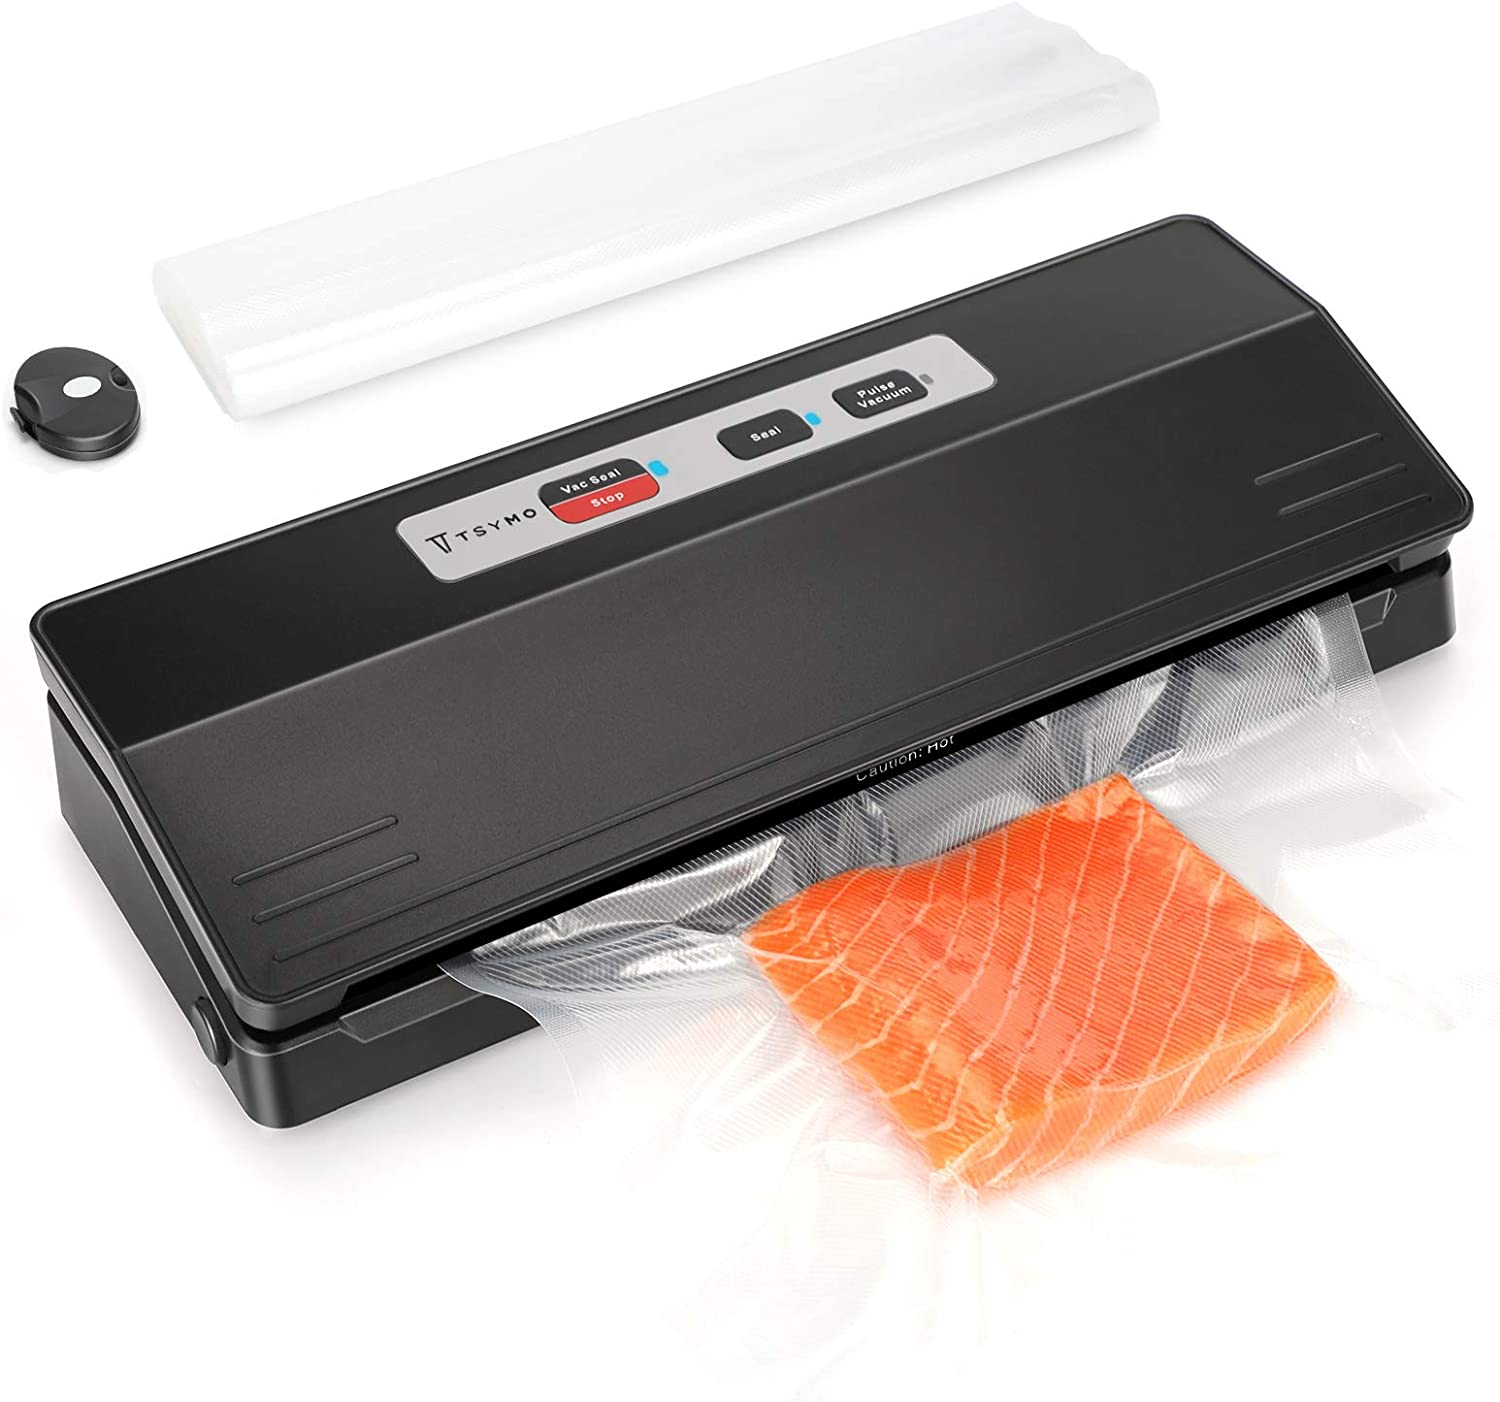 TSYMO Vacuum Sealer Machine - 100 Times Consecutive Seals, -70Kpa Automatic Food Saver Vacuum Packing Machine for Food Preservation with 10Pcs Bags Starter Kit, Pulse Vacuum, Led Indicator Lights